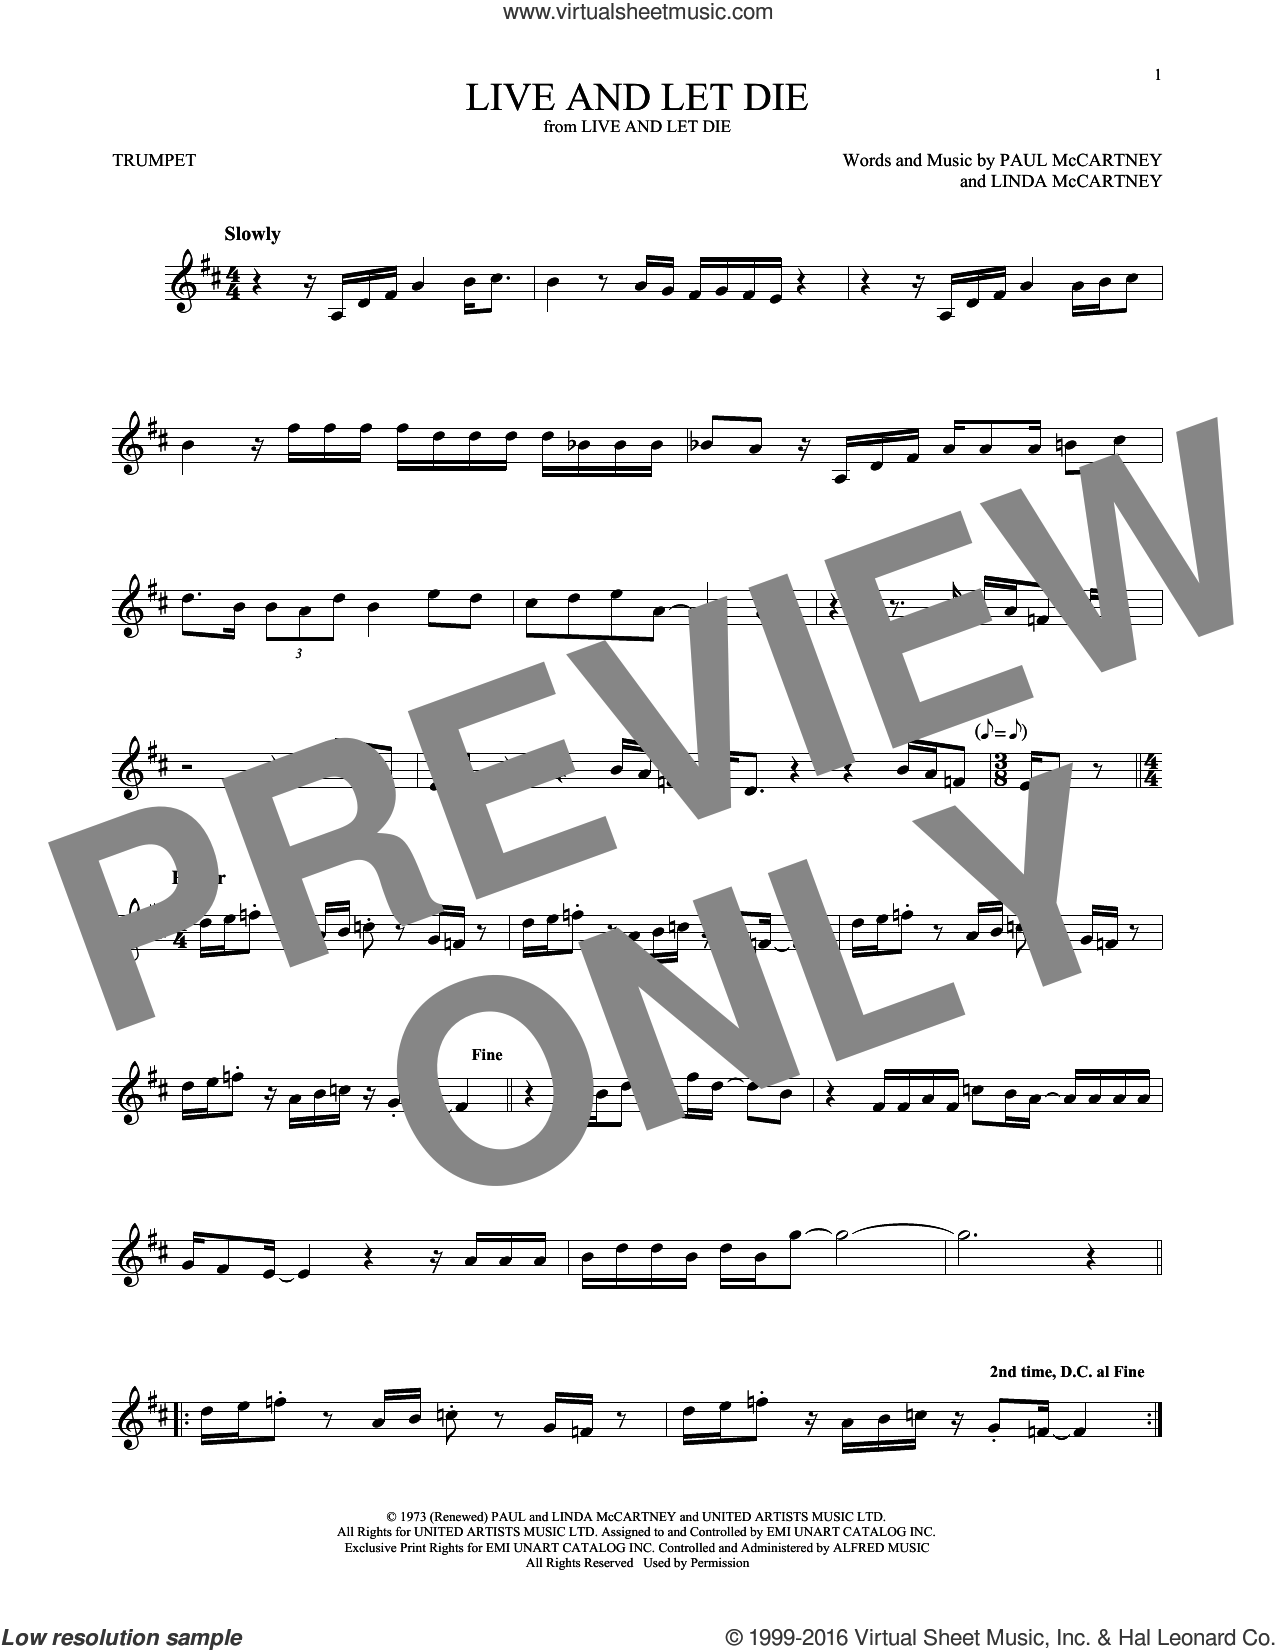 Live And Let Die sheet music for trumpet solo by Wings, Linda McCartney and Paul McCartney, intermediate skill level